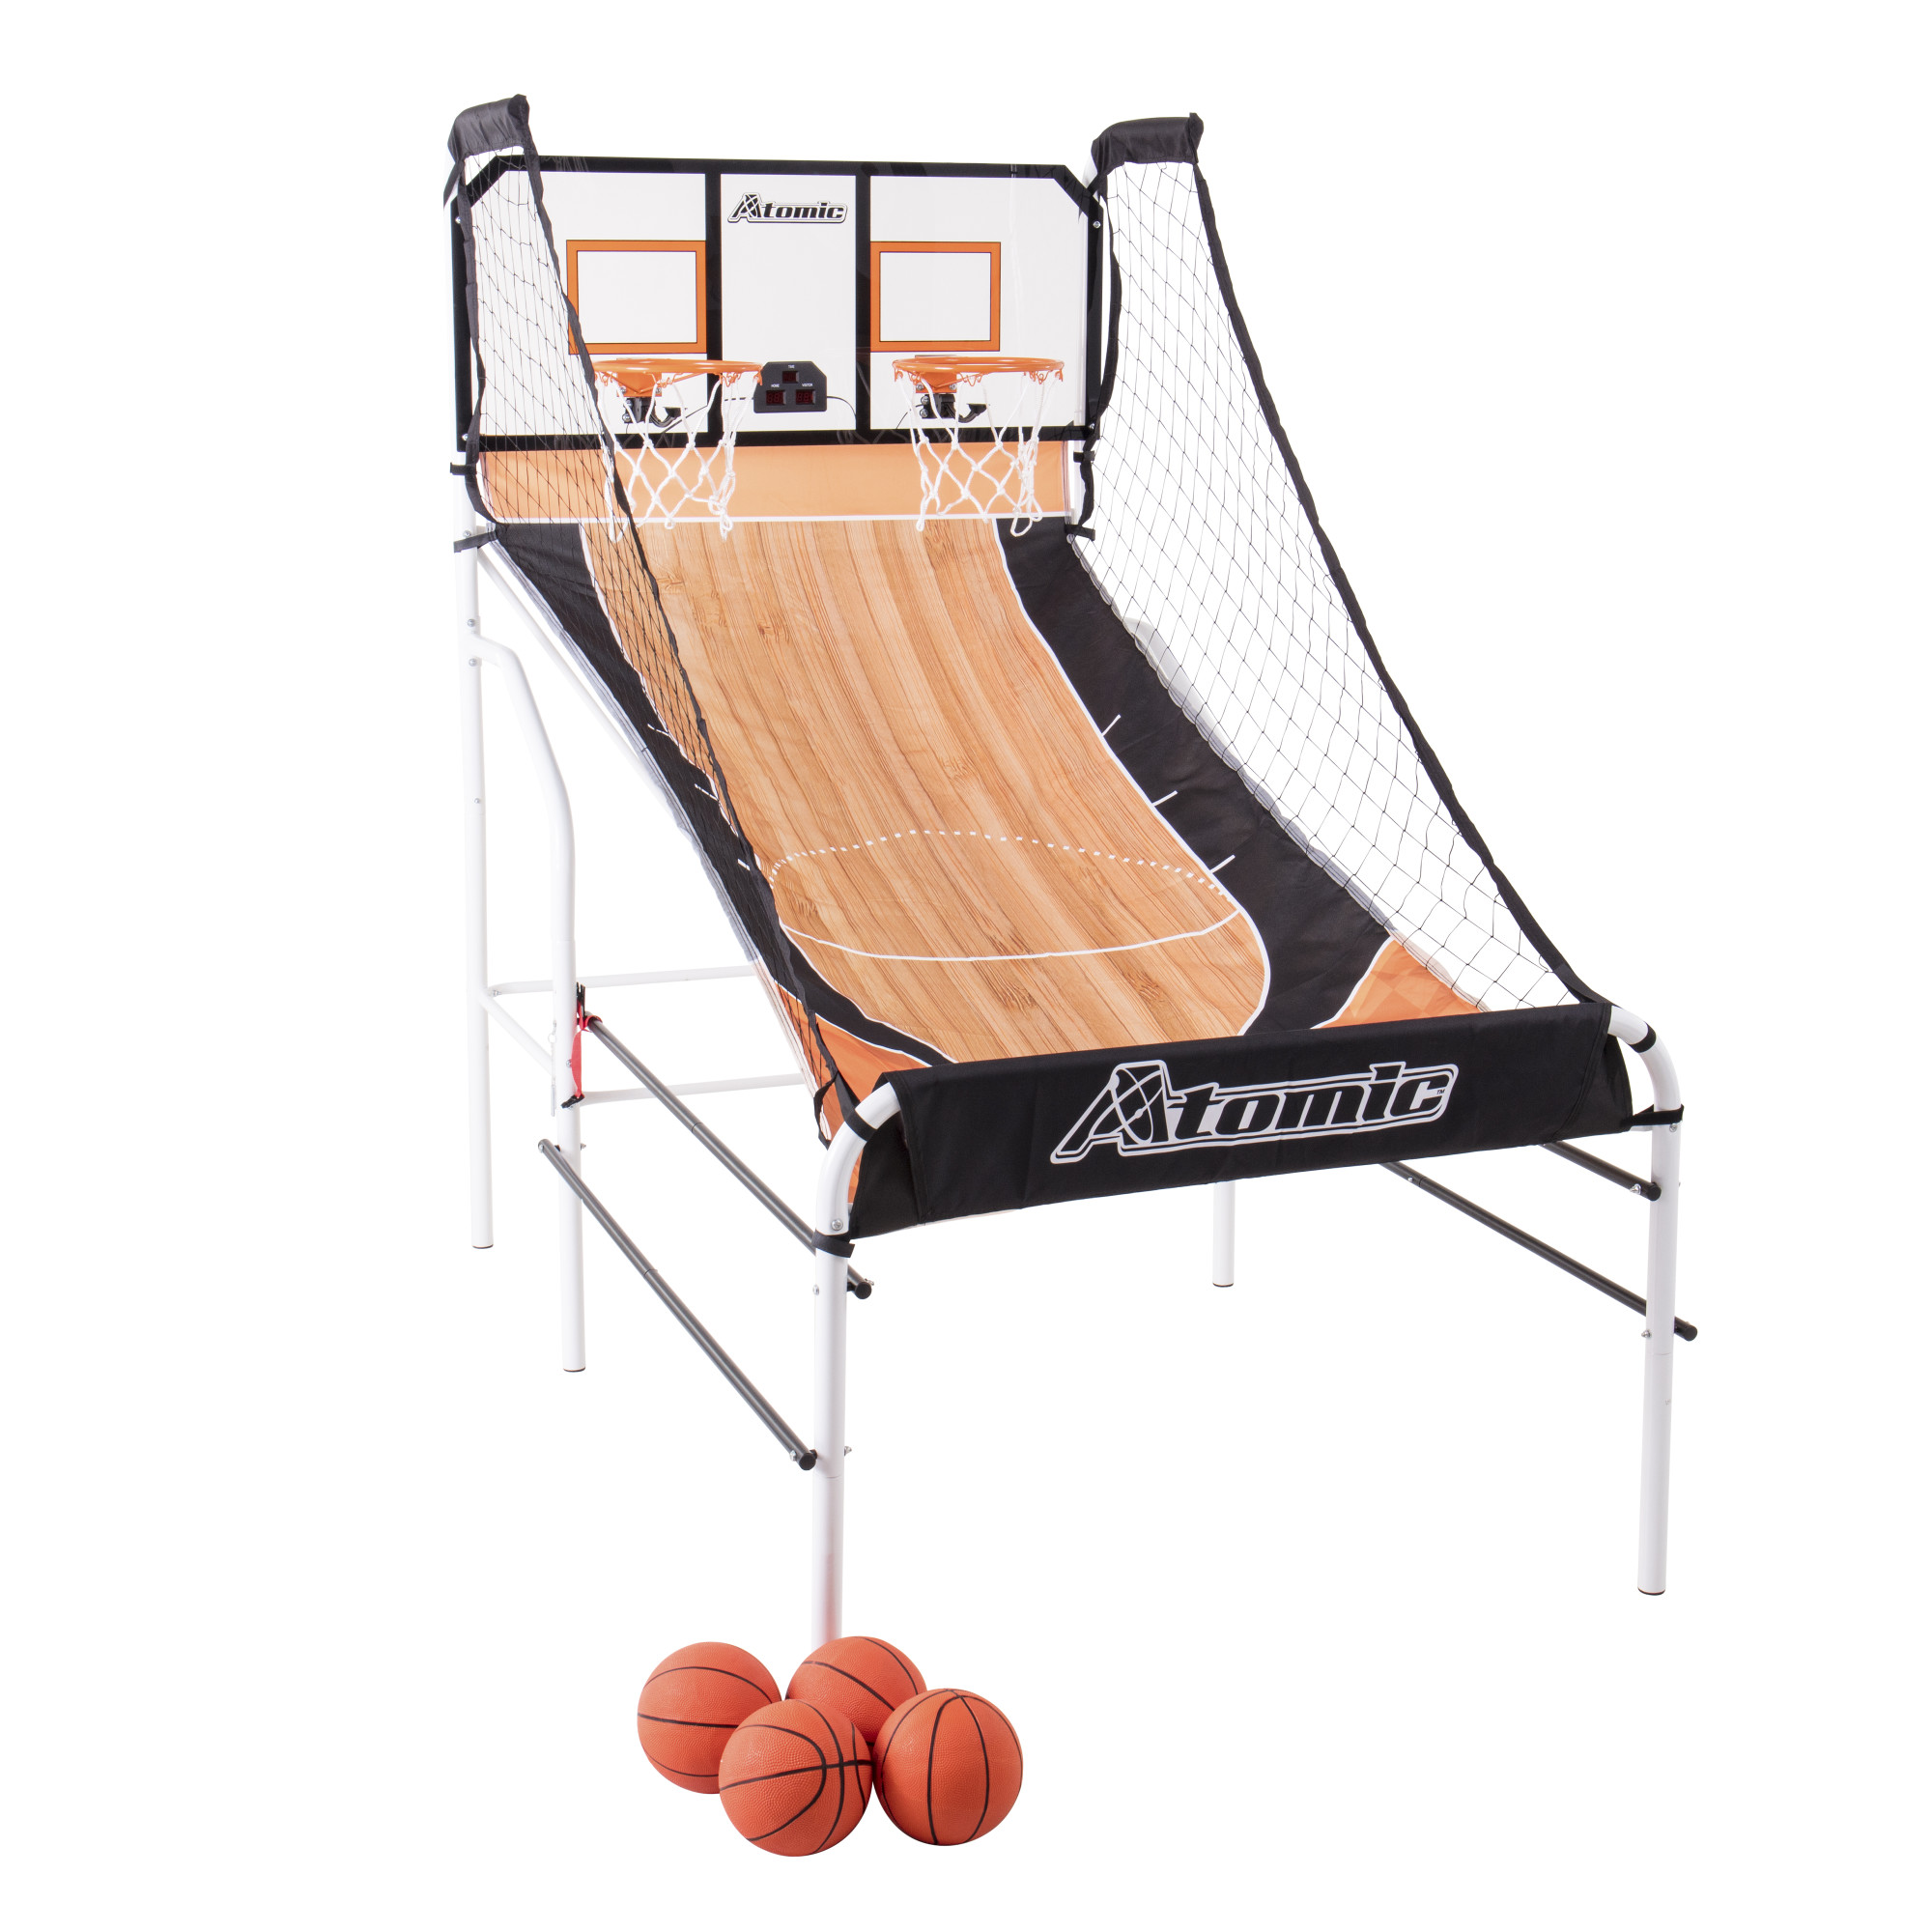 Atomic Slam Dunk Basketball Shootout Includes 4 Miniature Basketballs and Air Pump and Needle